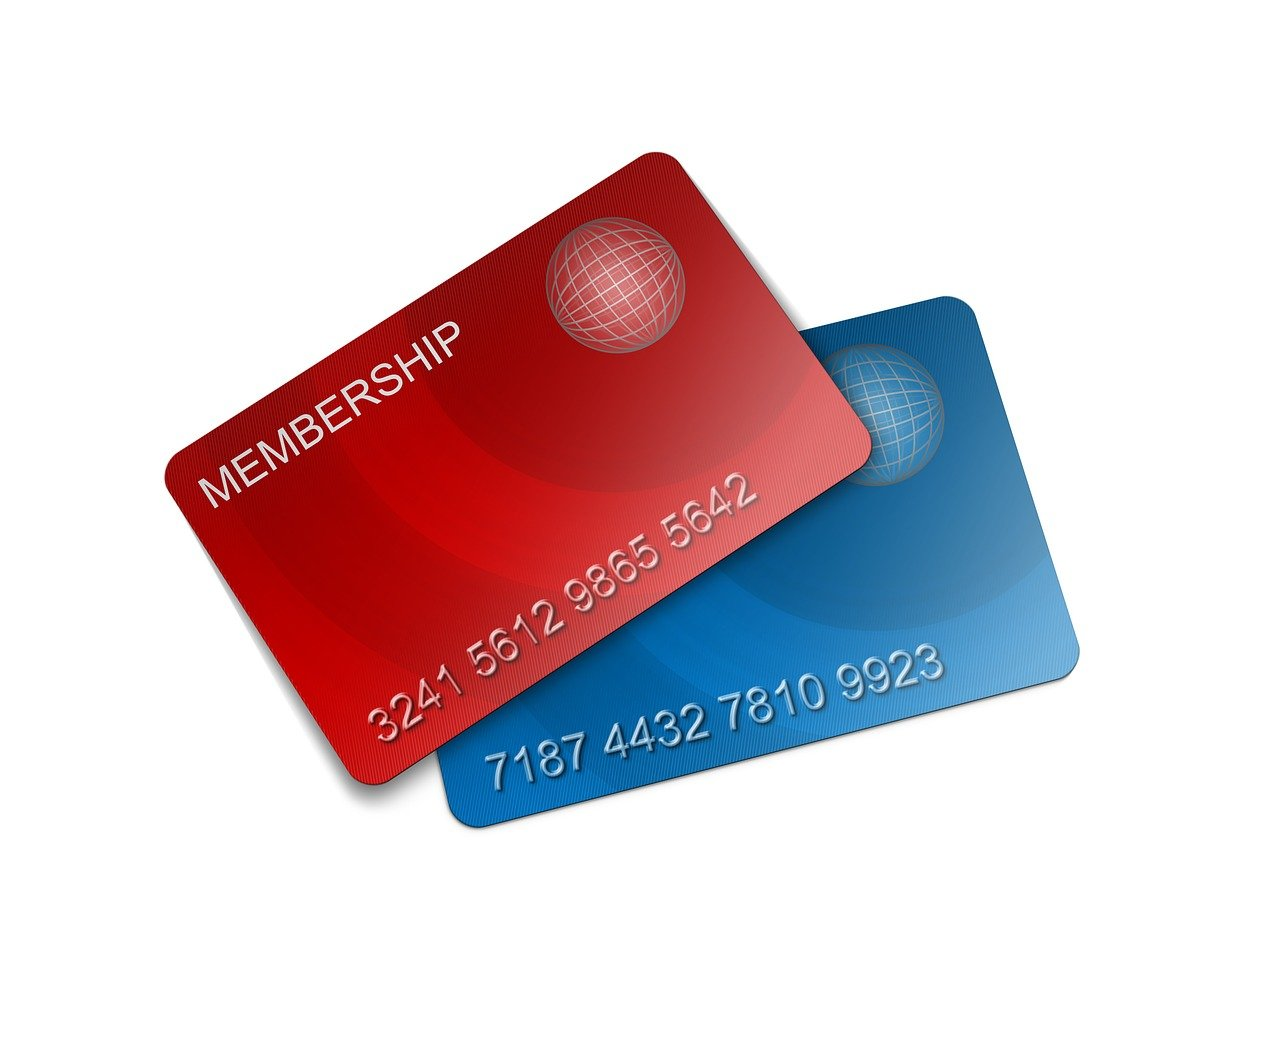 100 Fresh Credit Card Numbers Expiration Until 2023